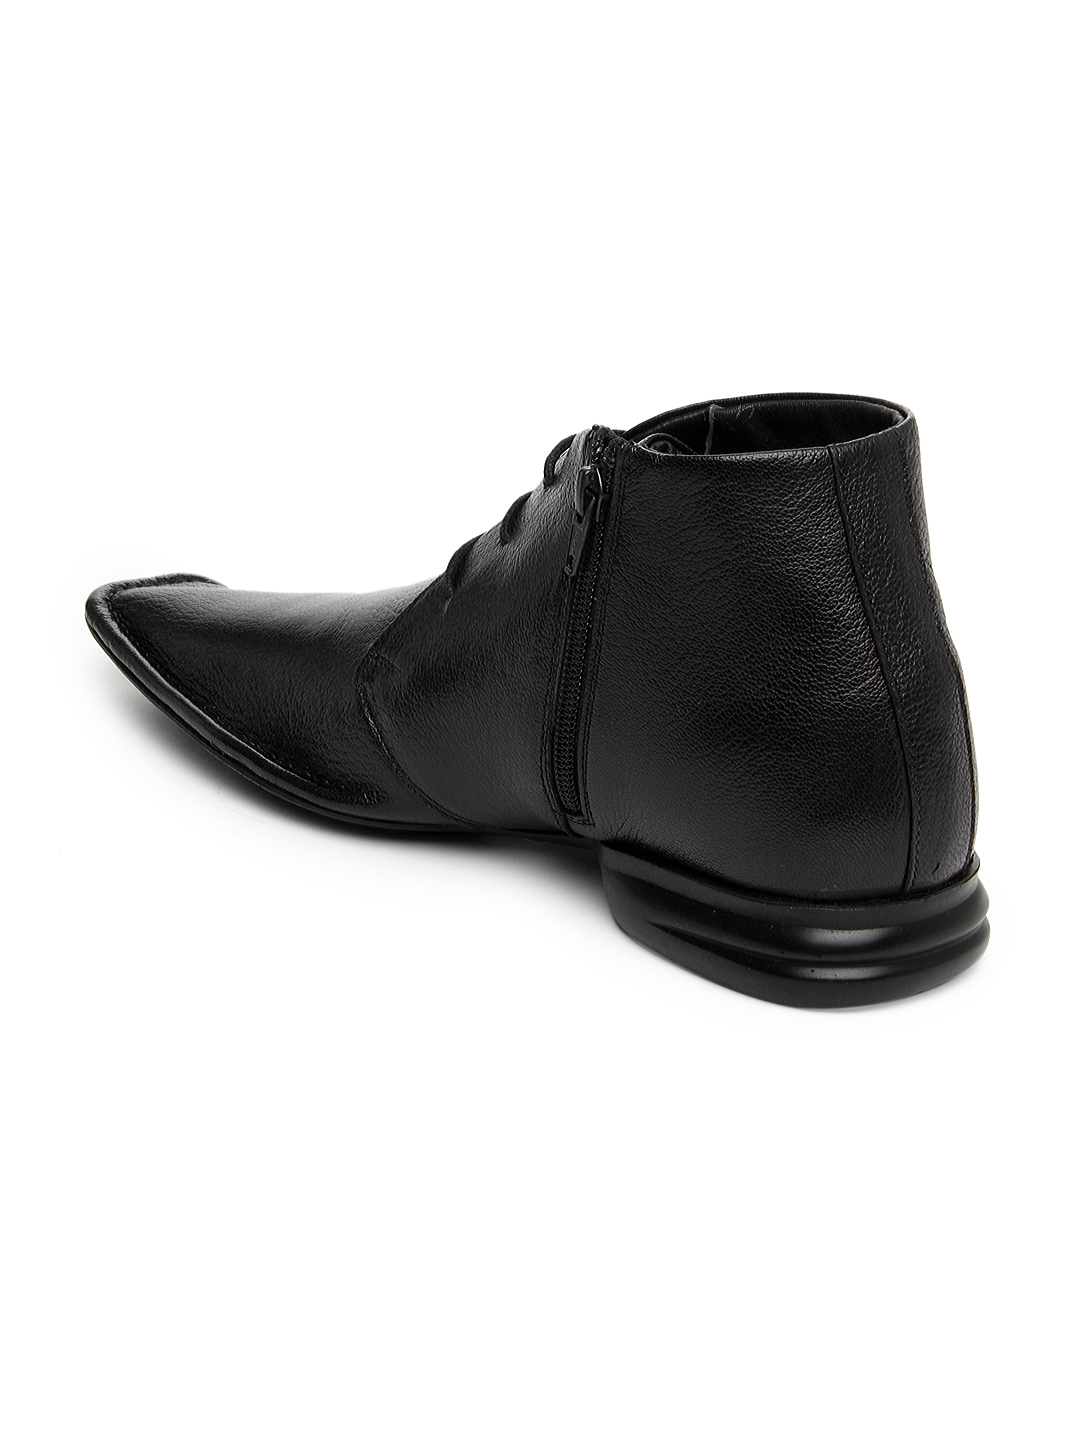 f623cb40e78 Buy Franco Leone Men Black Leather Semi Formal Shoes - Formal Shoes ...